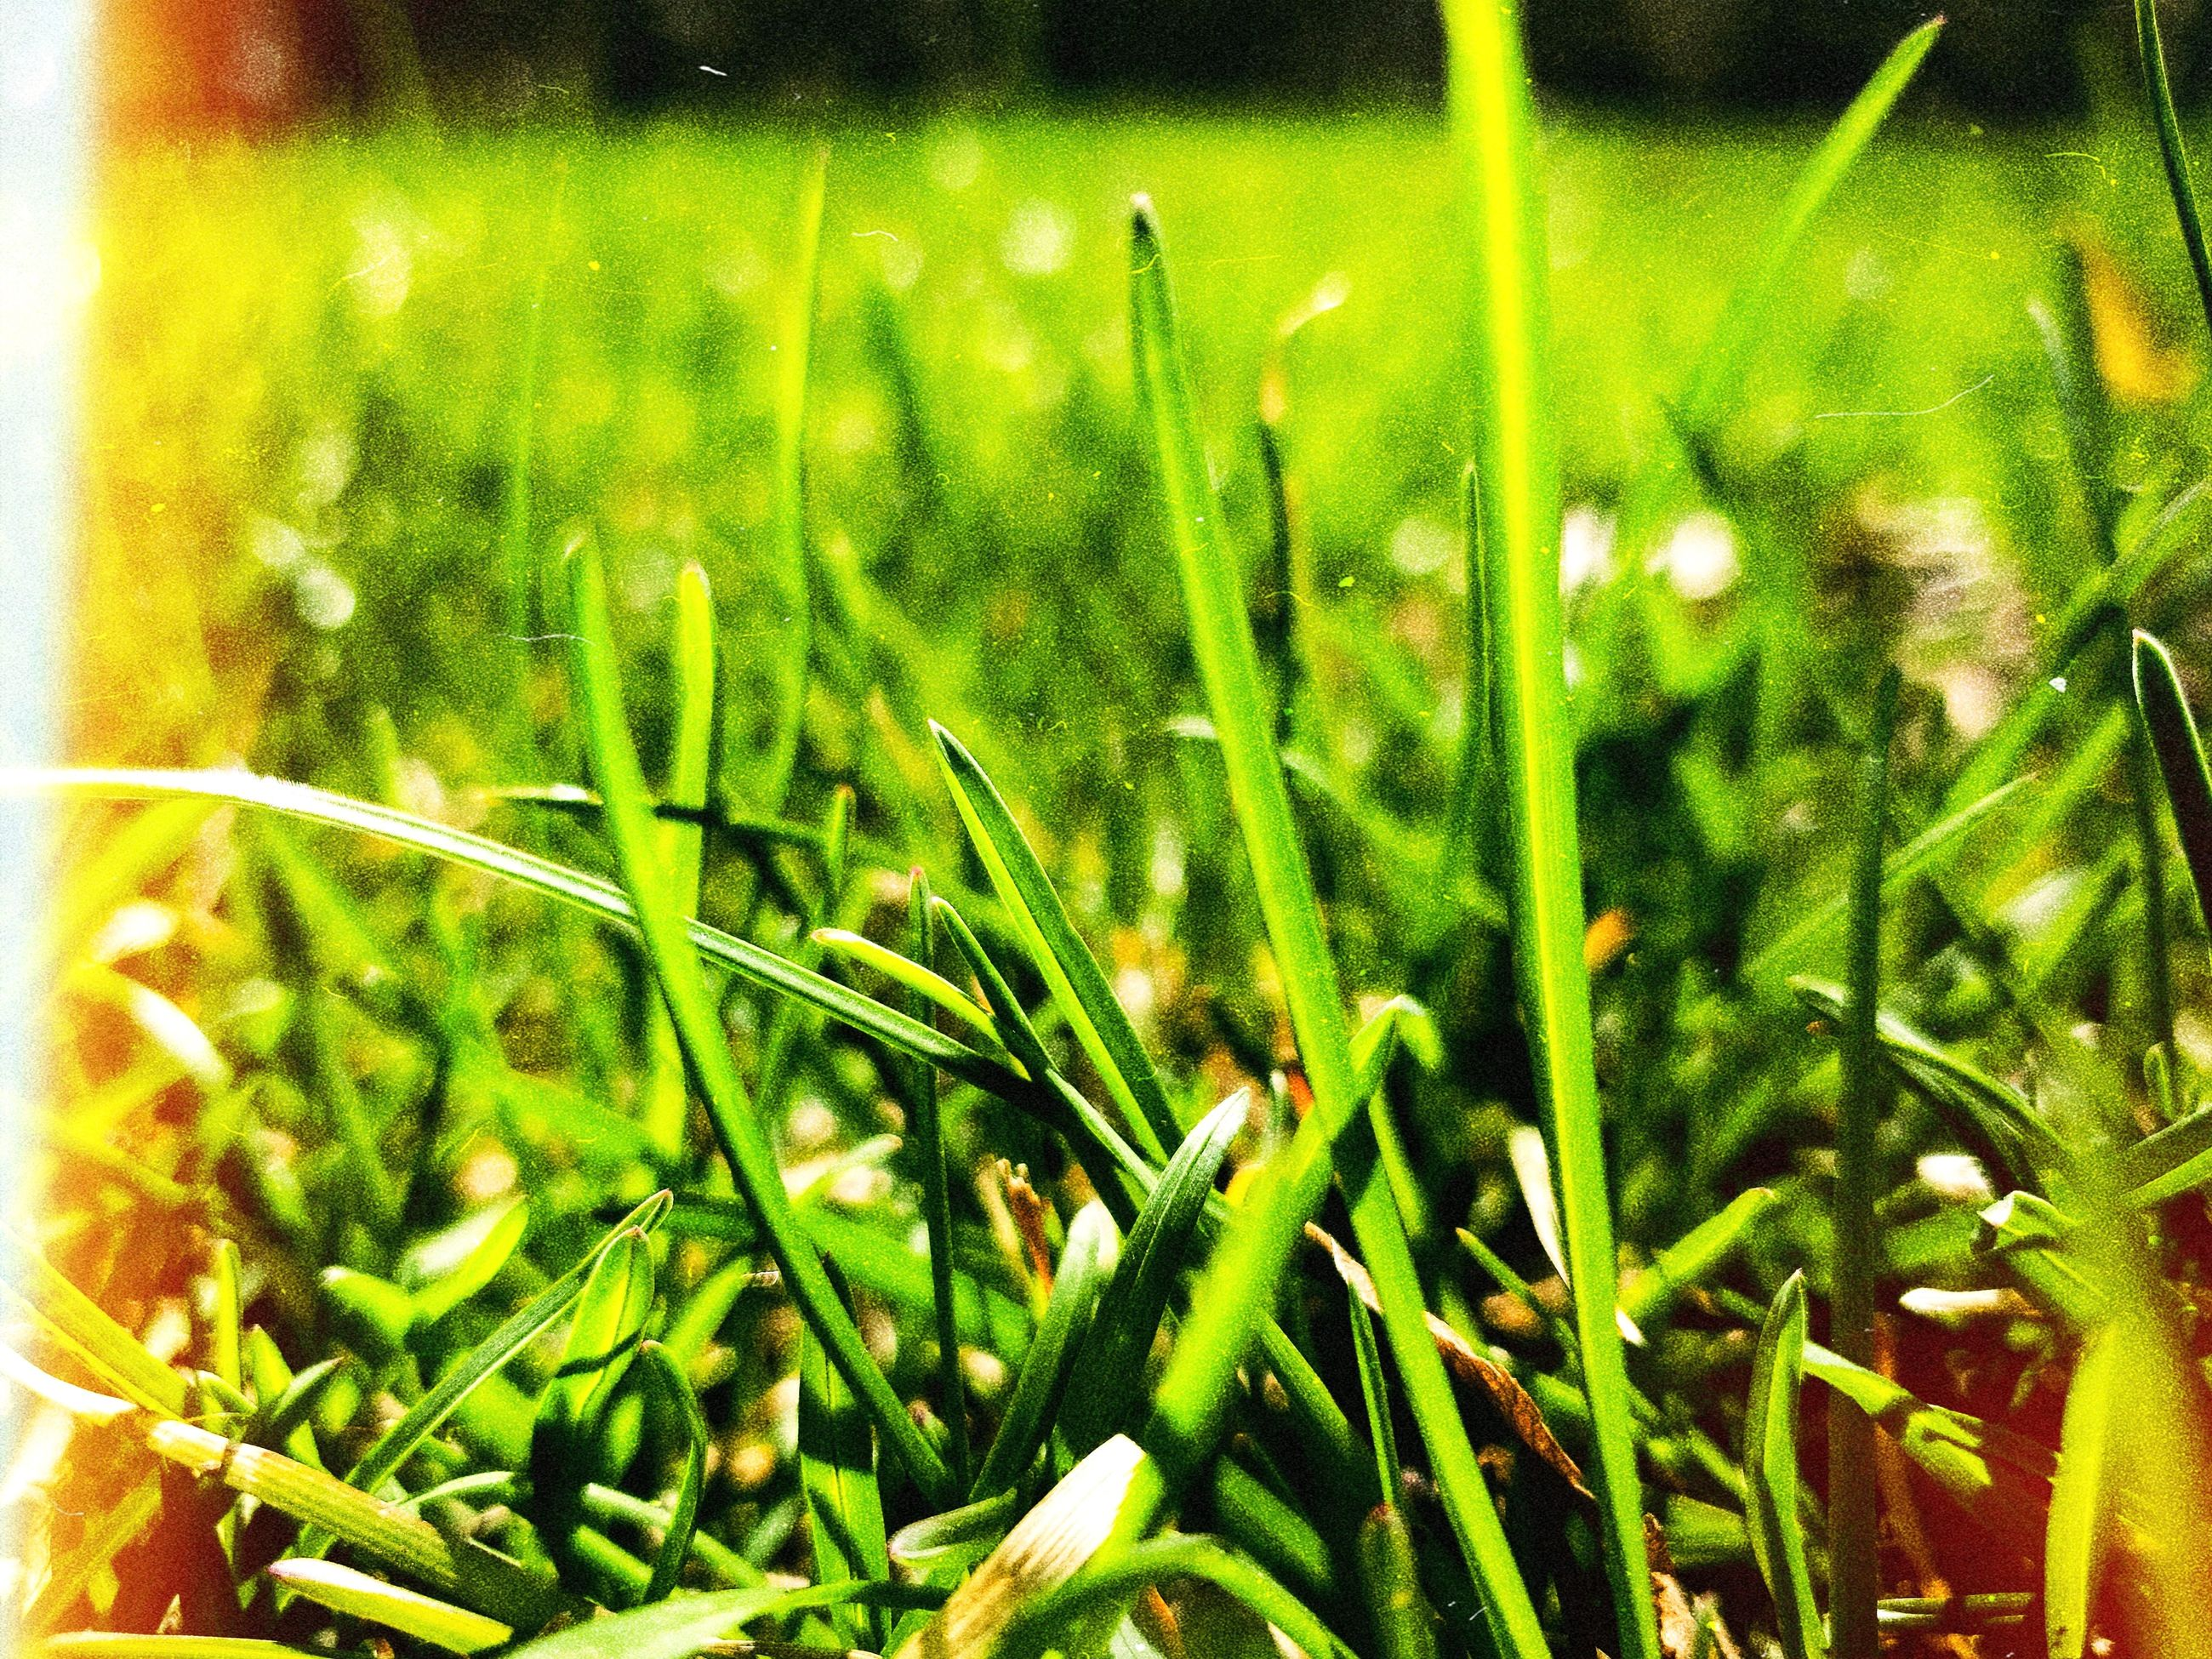 green color, plant, growth, grass, close-up, nature, beauty in nature, no people, blade of grass, land, field, freshness, day, water, selective focus, tranquility, wet, outdoors, sunlight, purity, dew